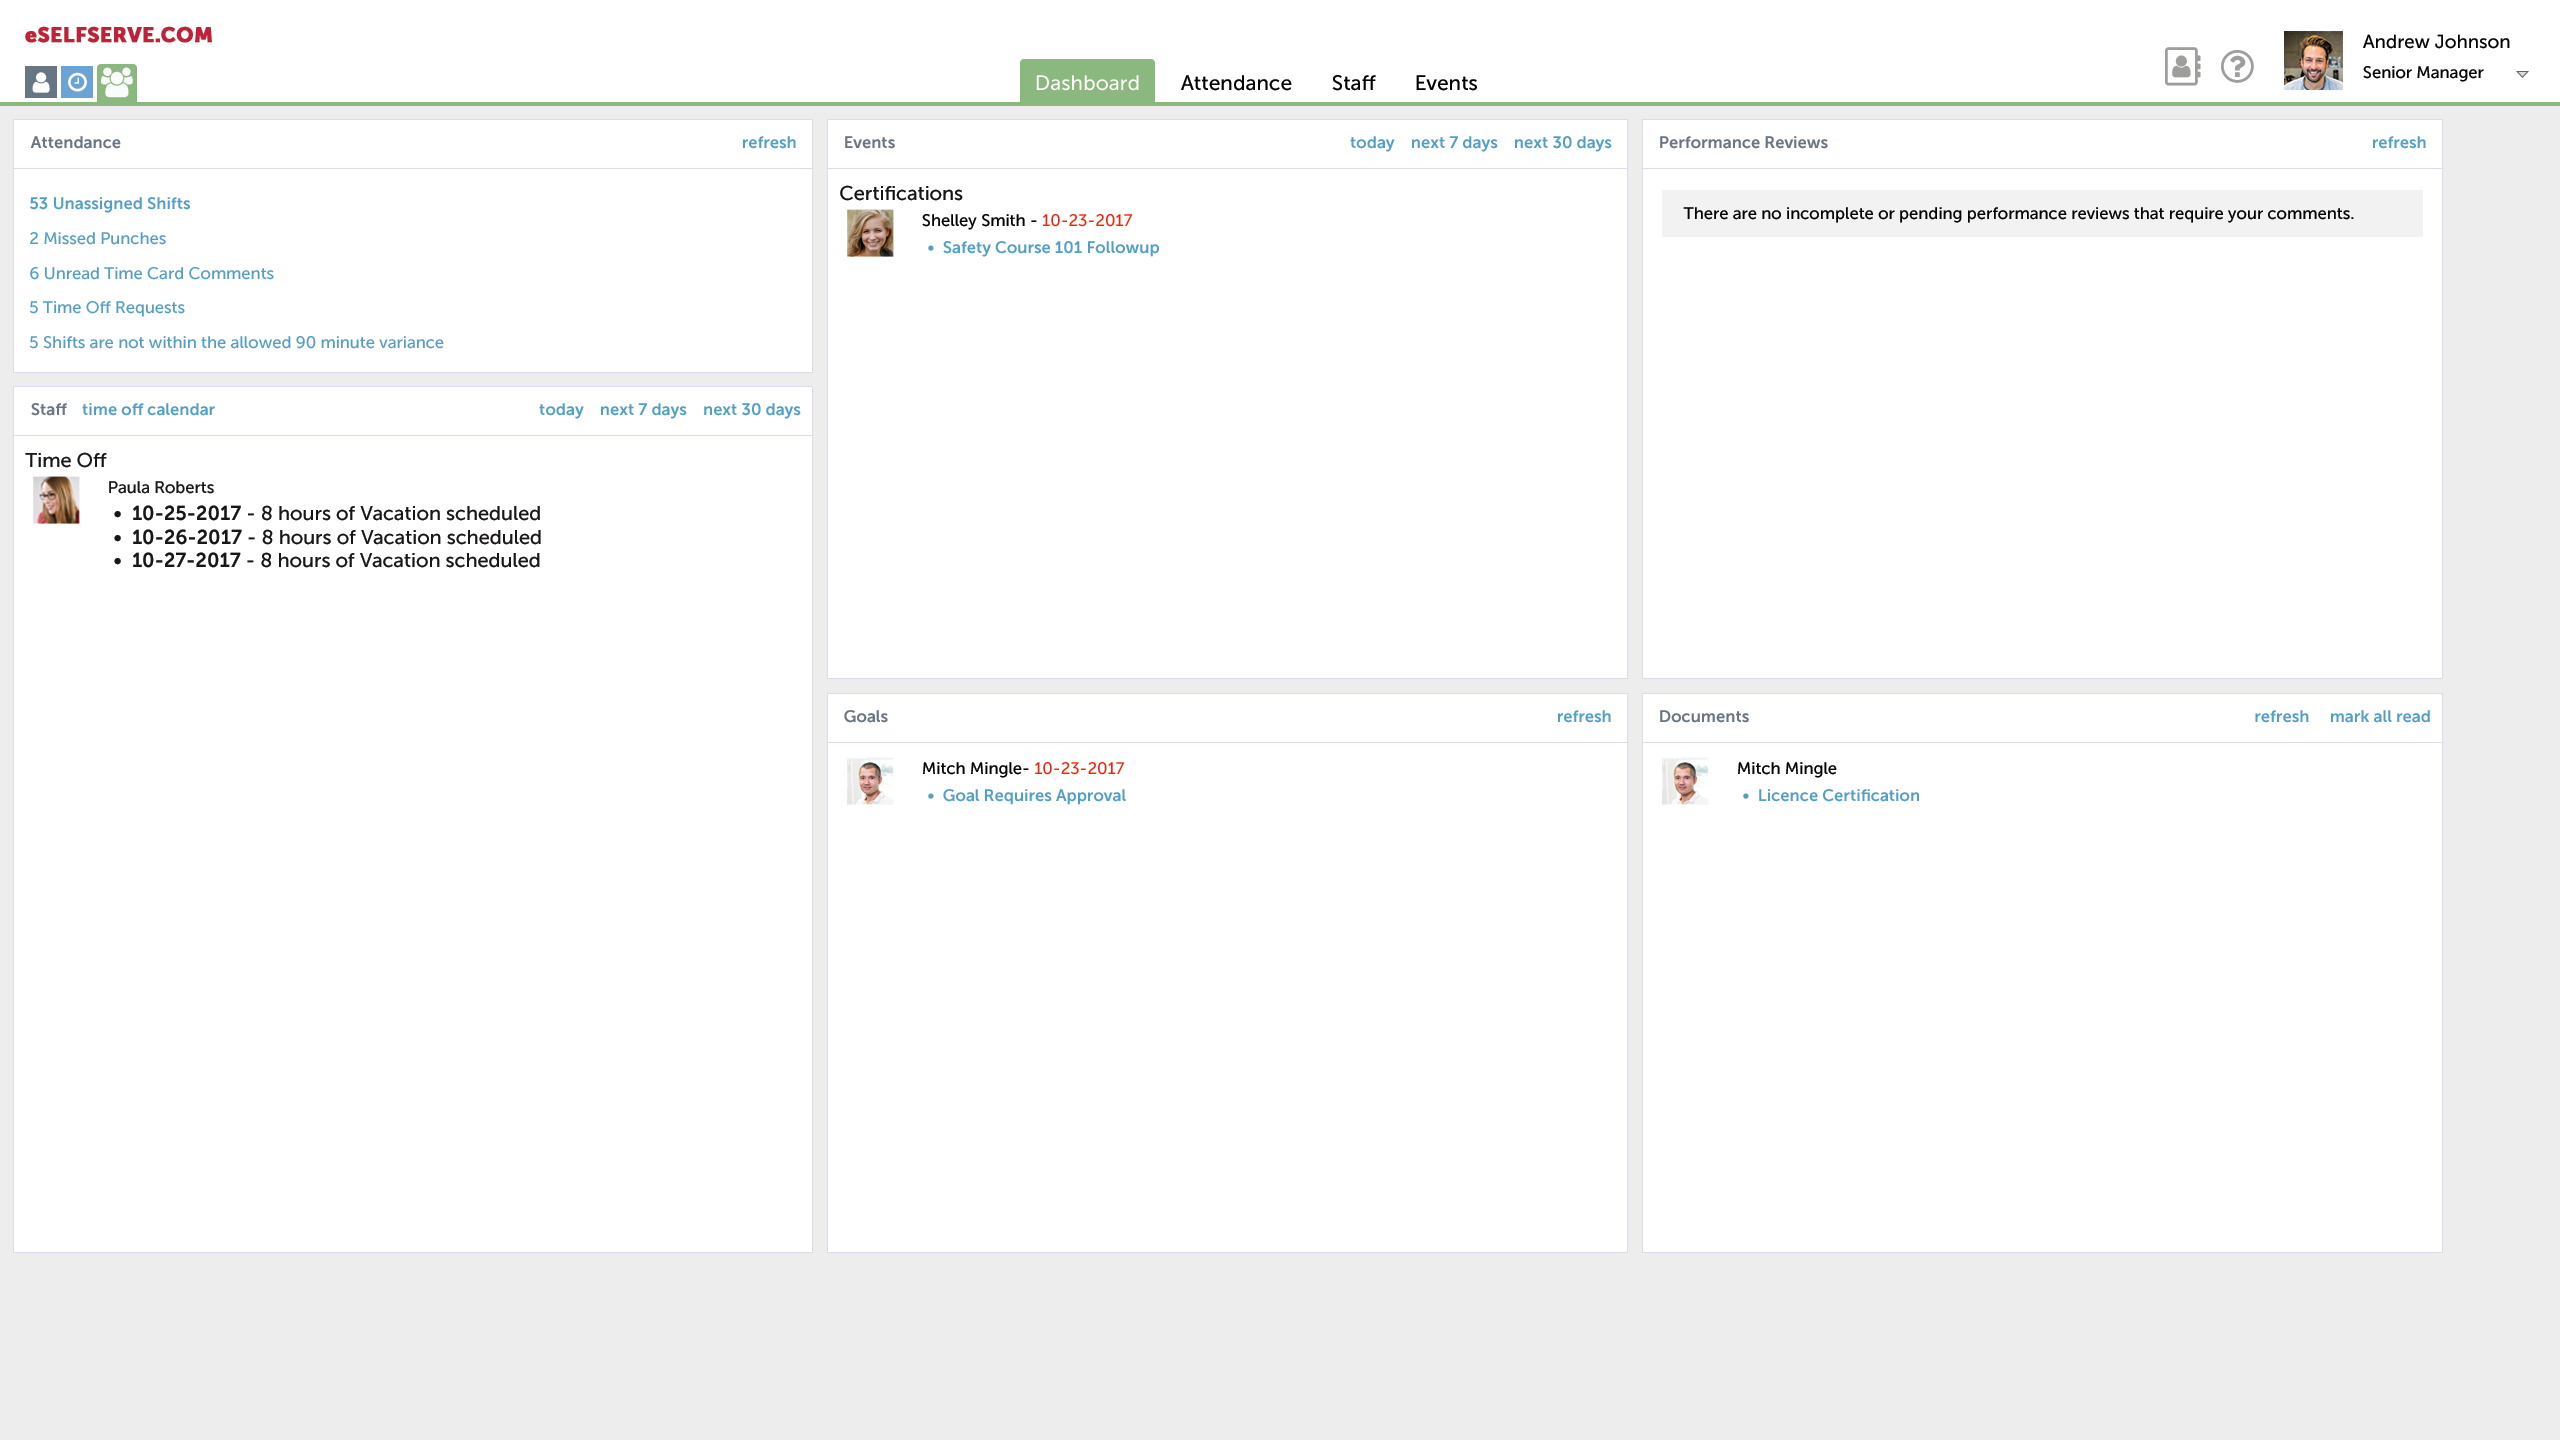 APS Core HR Solution Demo - Manager Self Service Dashboard